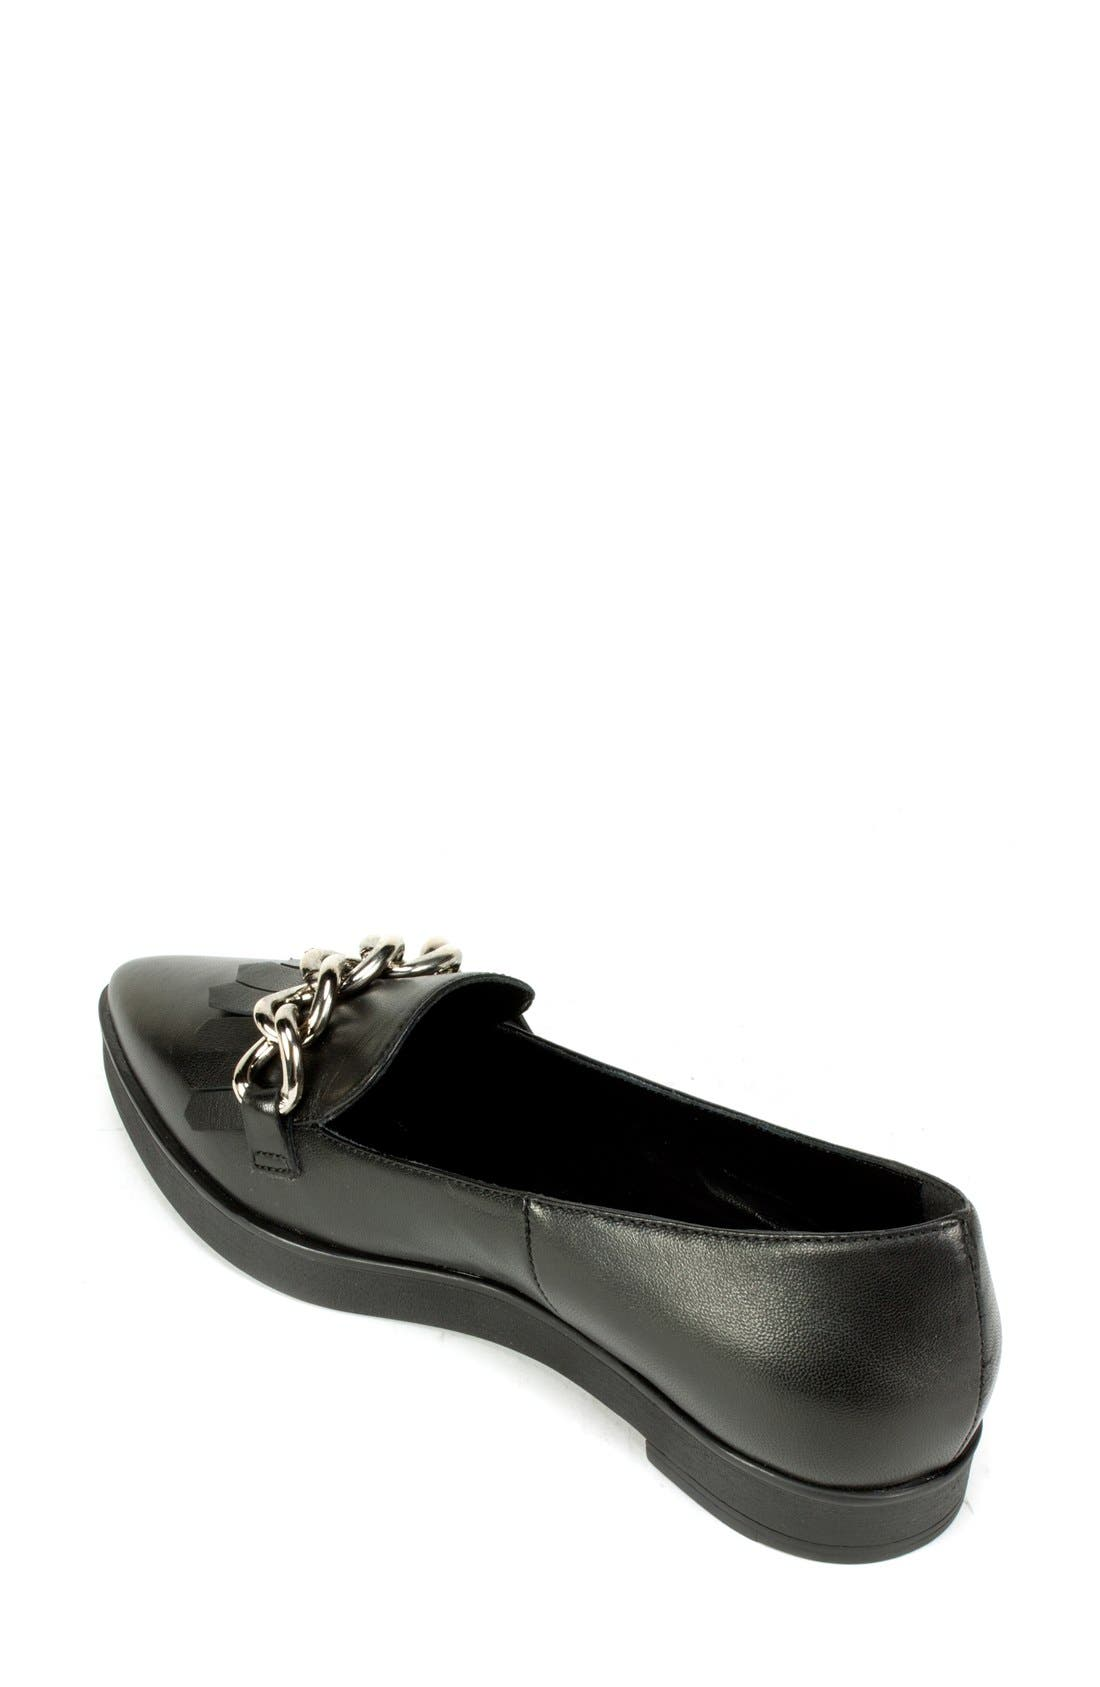 Alternate Image 2  - Summit 'Elena' Fringed Platform Loafer (Women)